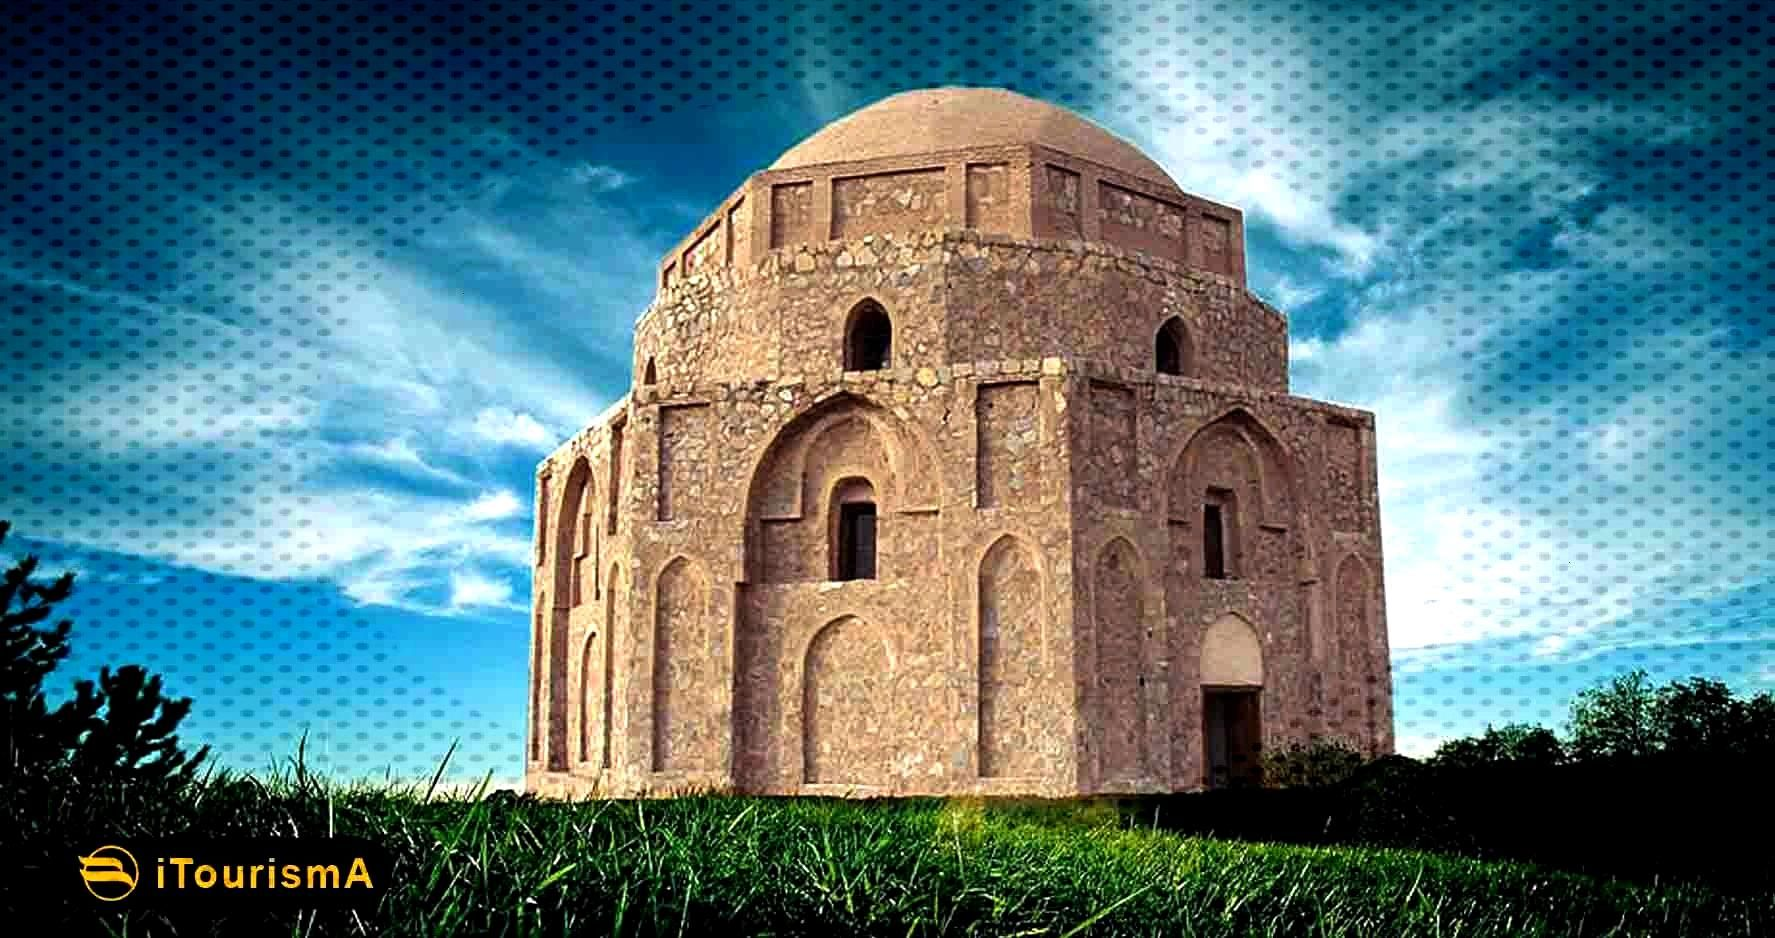 Jabaliyeh Dome  Location: Kerman, Kerman province, Iran Category: Monuments Description: Jabaliyeh